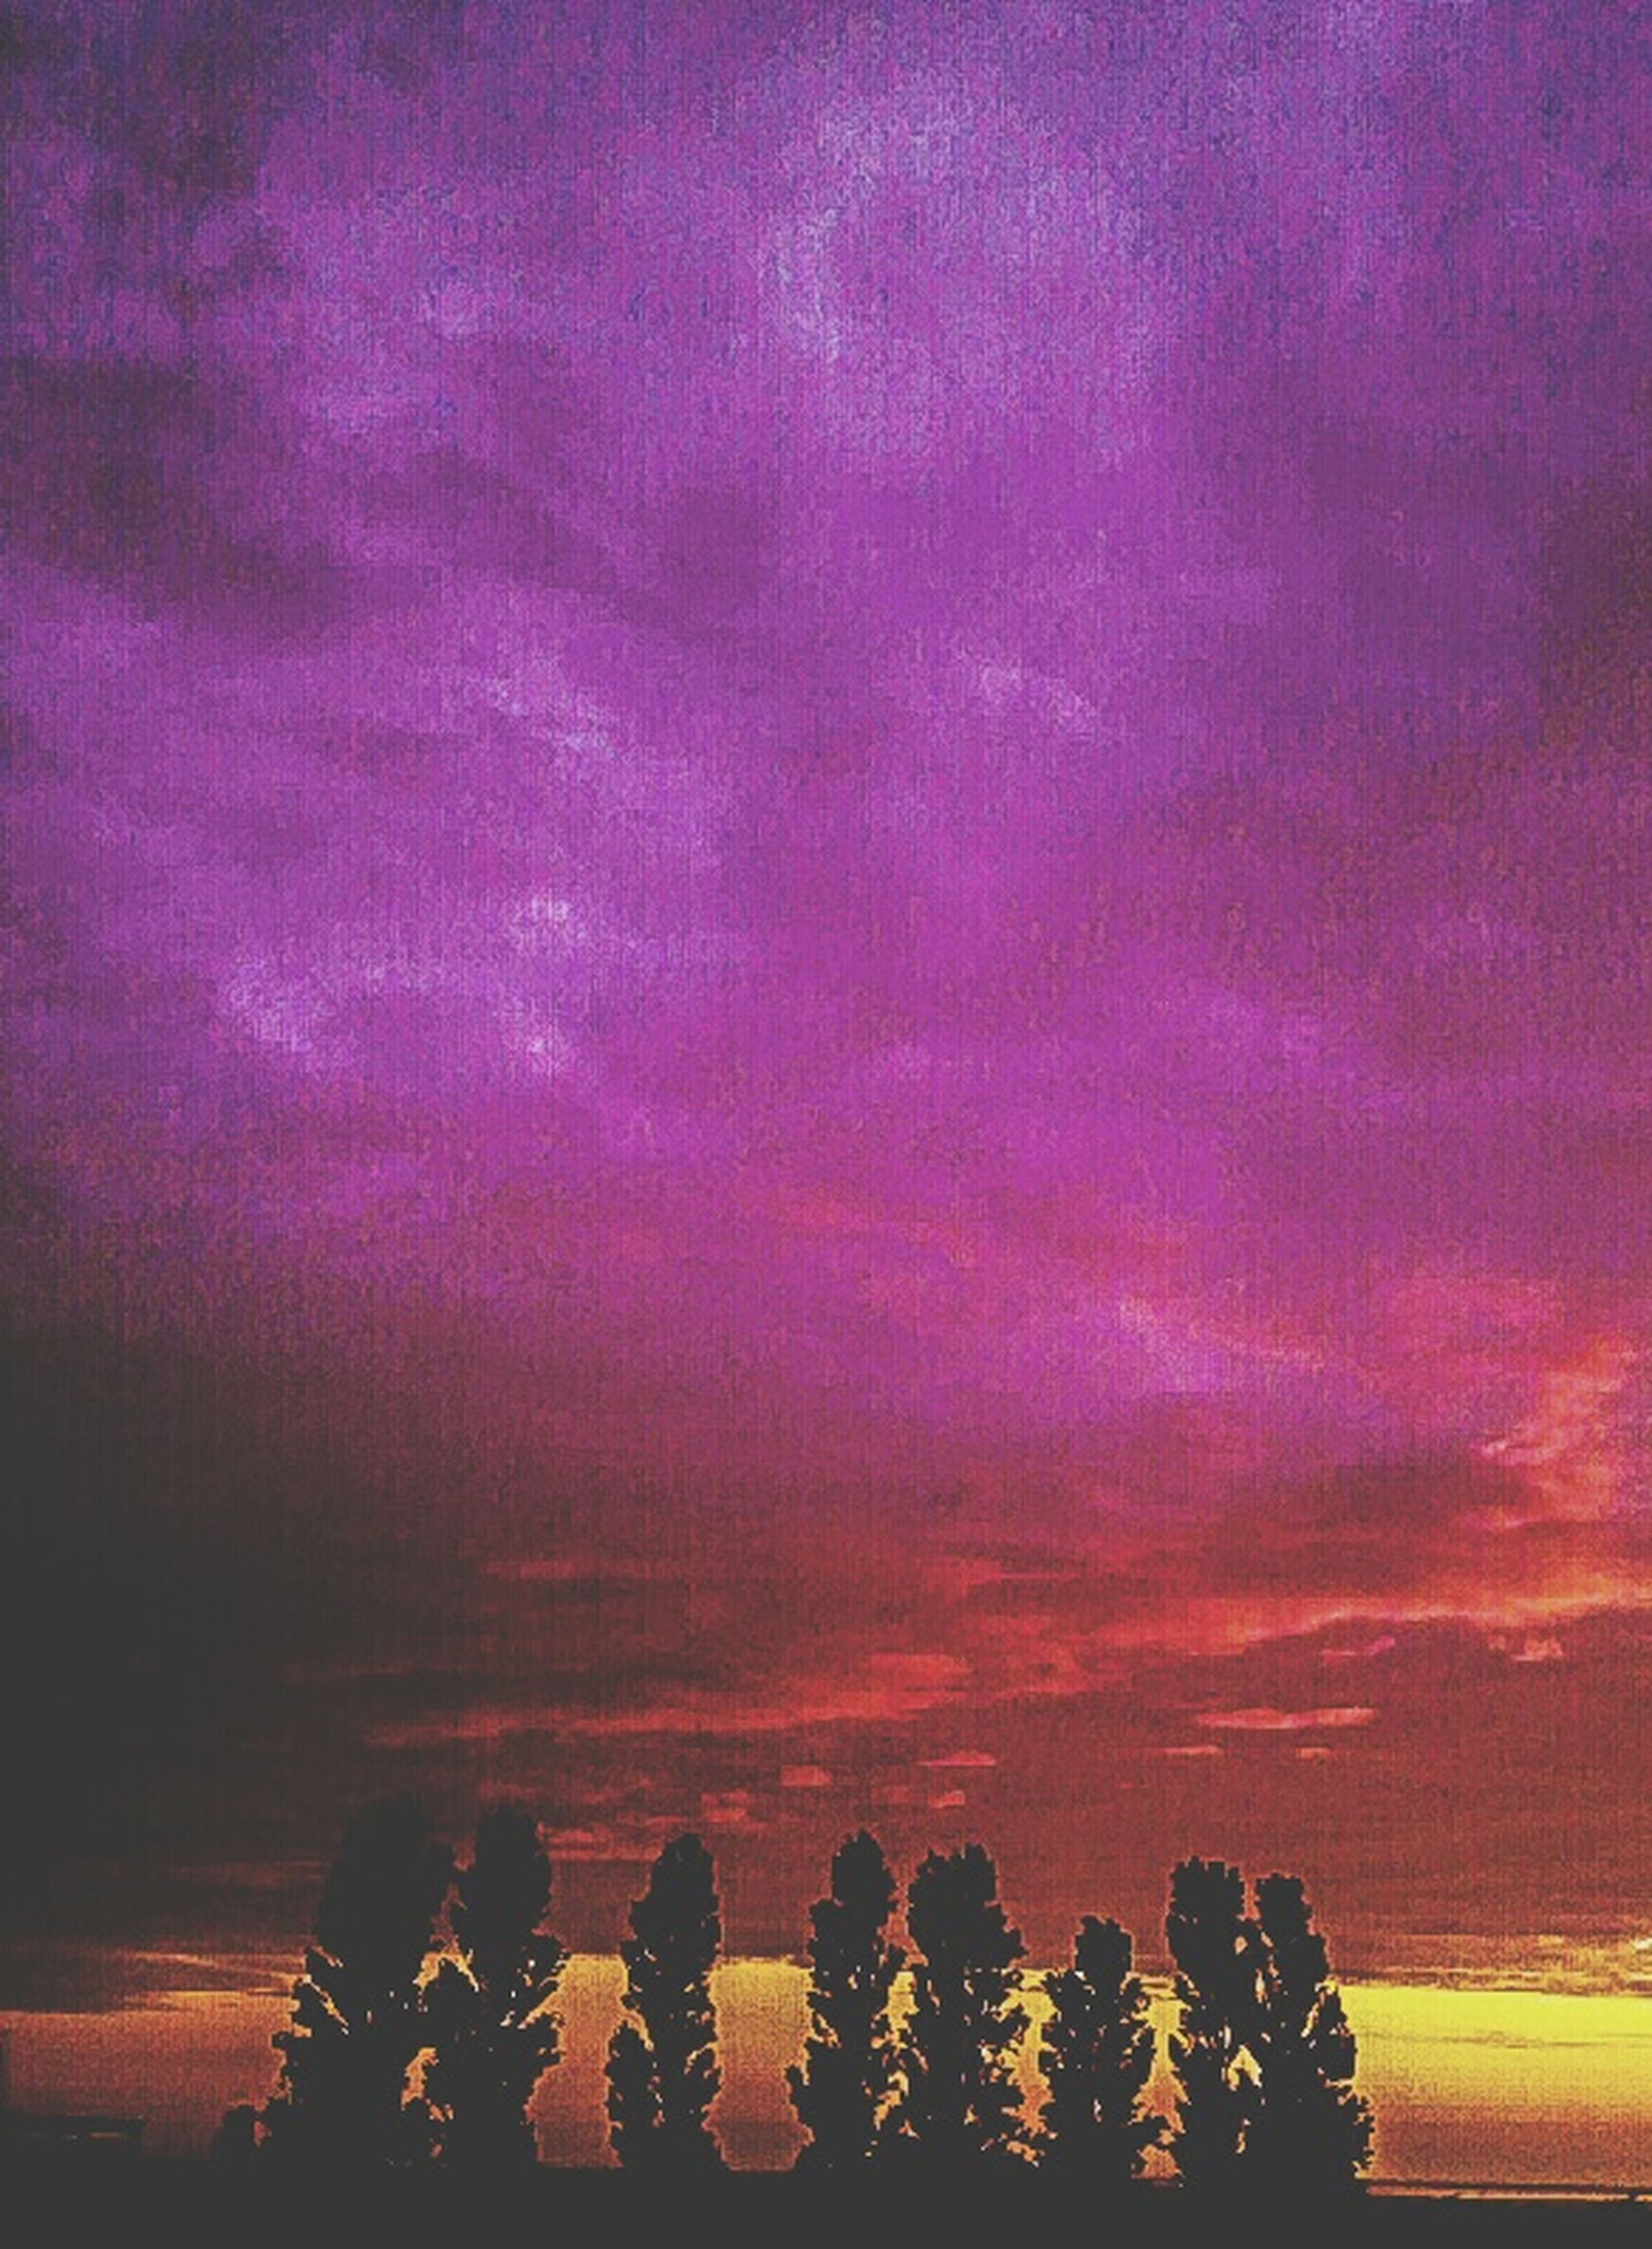 sunset, beauty in nature, dramatic sky, scenics, tranquil scene, silhouette, cloud - sky, tranquility, sky, cloud, purple, nature, idyllic, flower, majestic, growth, plant, pink, atmospheric mood, cloudy, outdoors, pink color, cloudscape, romantic sky, sea, moody sky, petal, no people, purple color, vibrant color